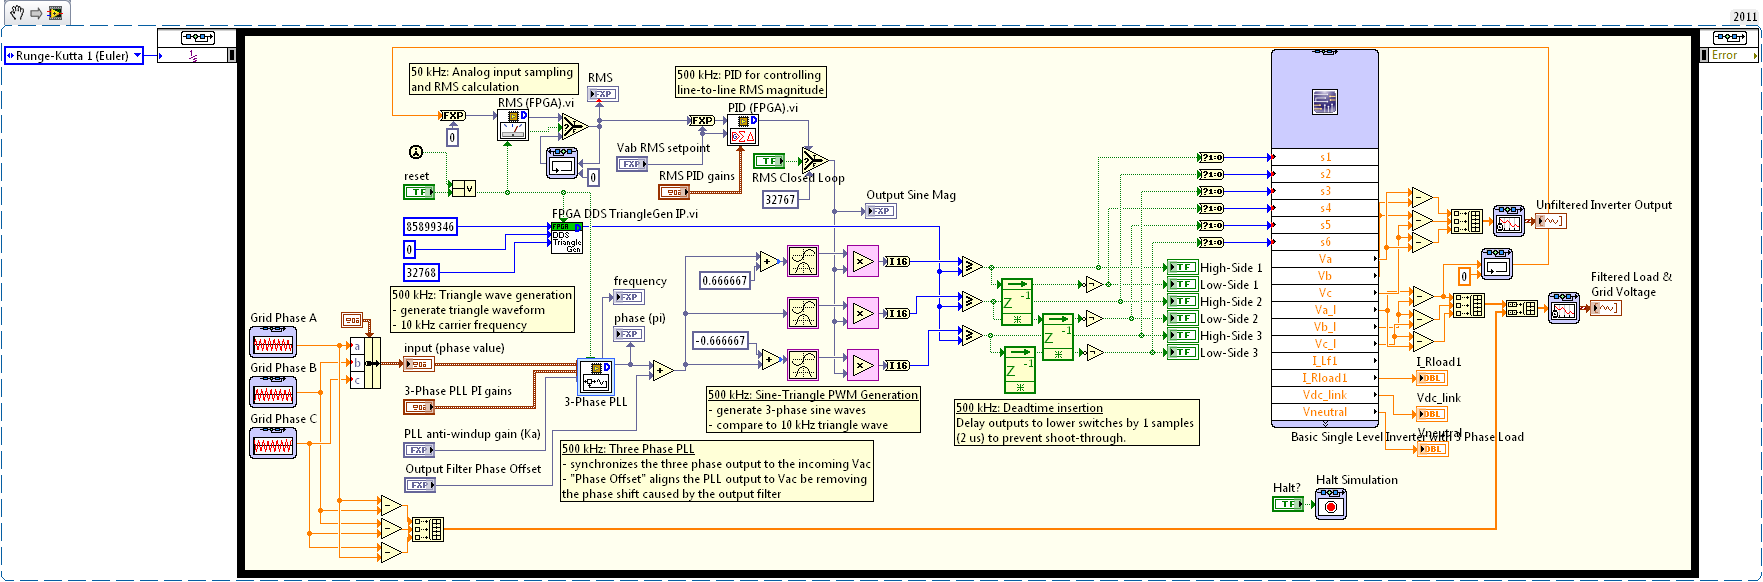 Complete System Simulation Of A 3 Phase Inverter Using Ni Multisim Rlc Series Circuit Details 6